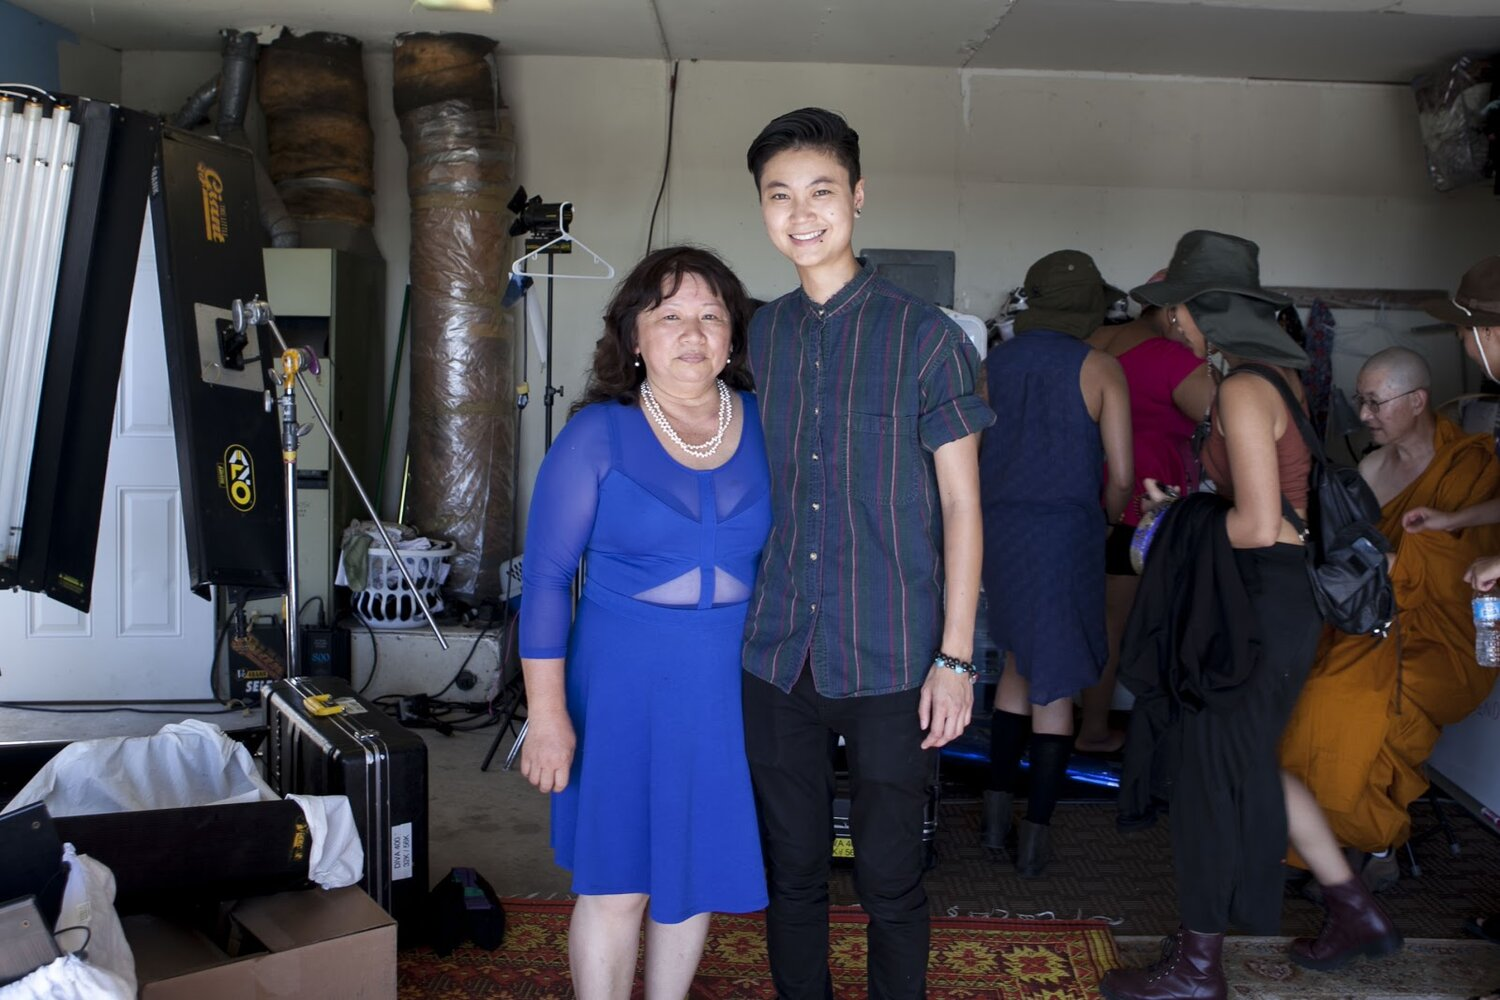 Actress Thu Pham poses next to Actor Ck Ong in the middle of a garage set.